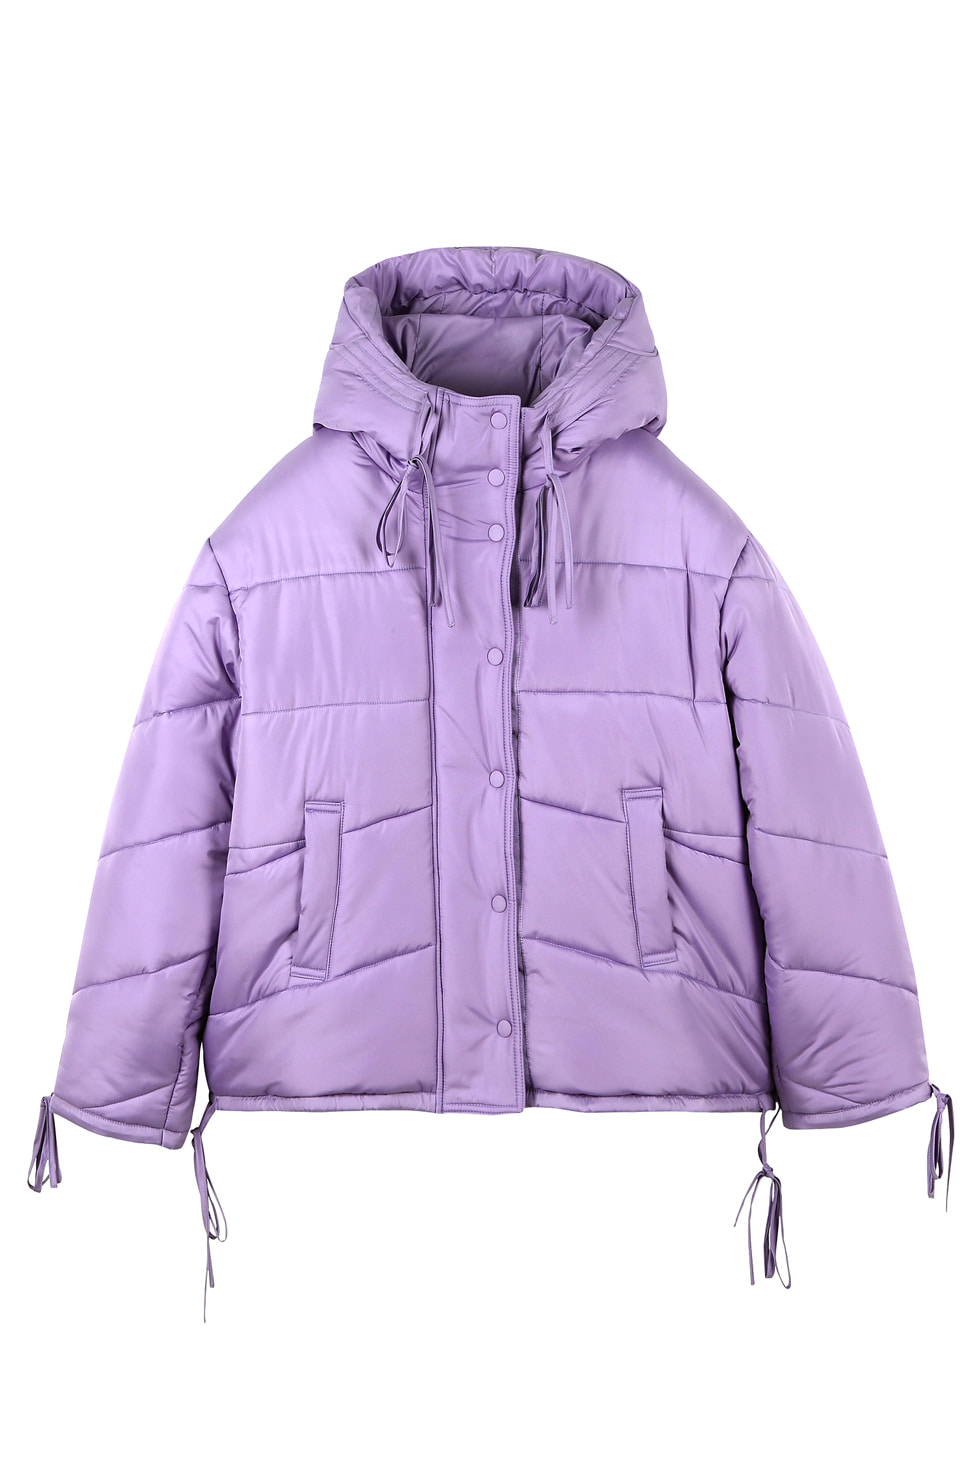 PASTEL SHORT PUFFER - PURPLE